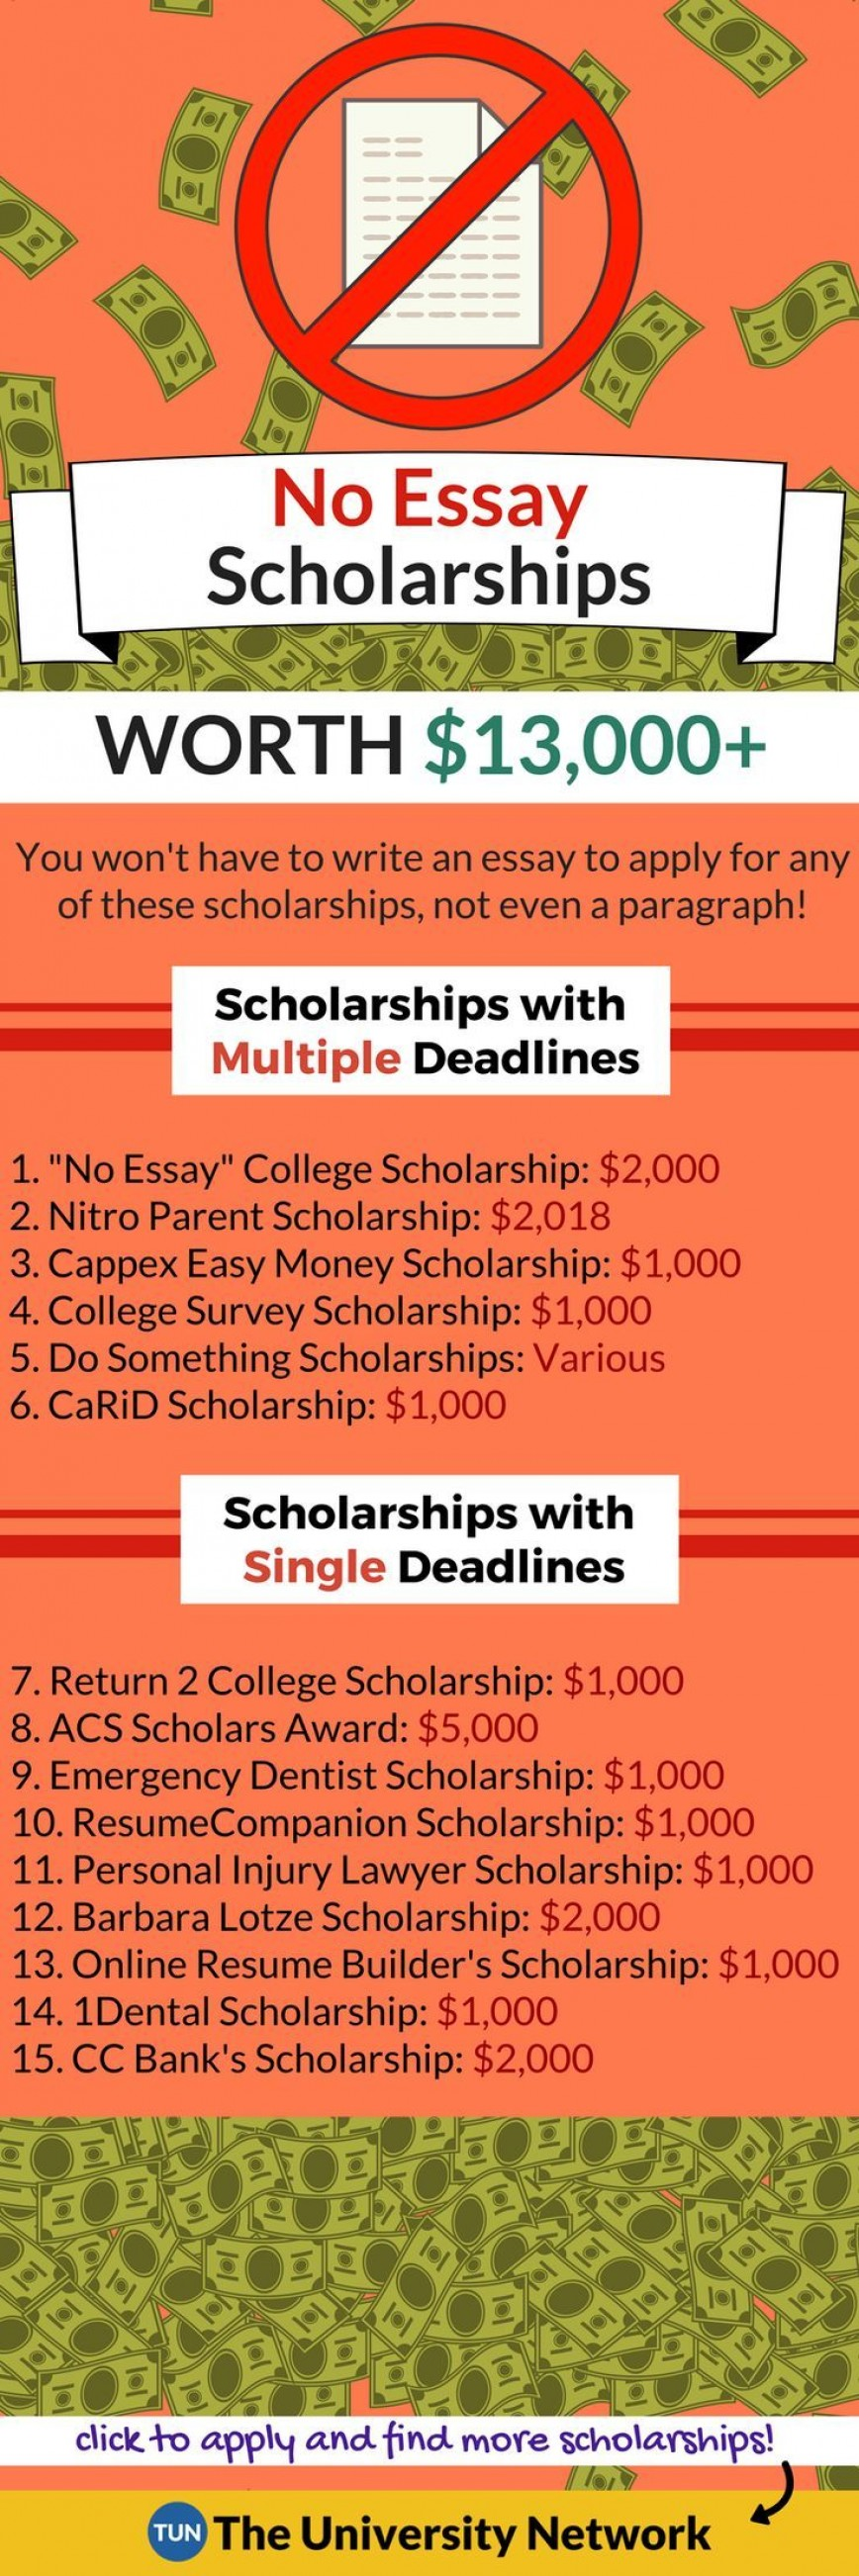 013 Essay Example No Exceptional Scholarships For Undergraduates College Students 2019 868